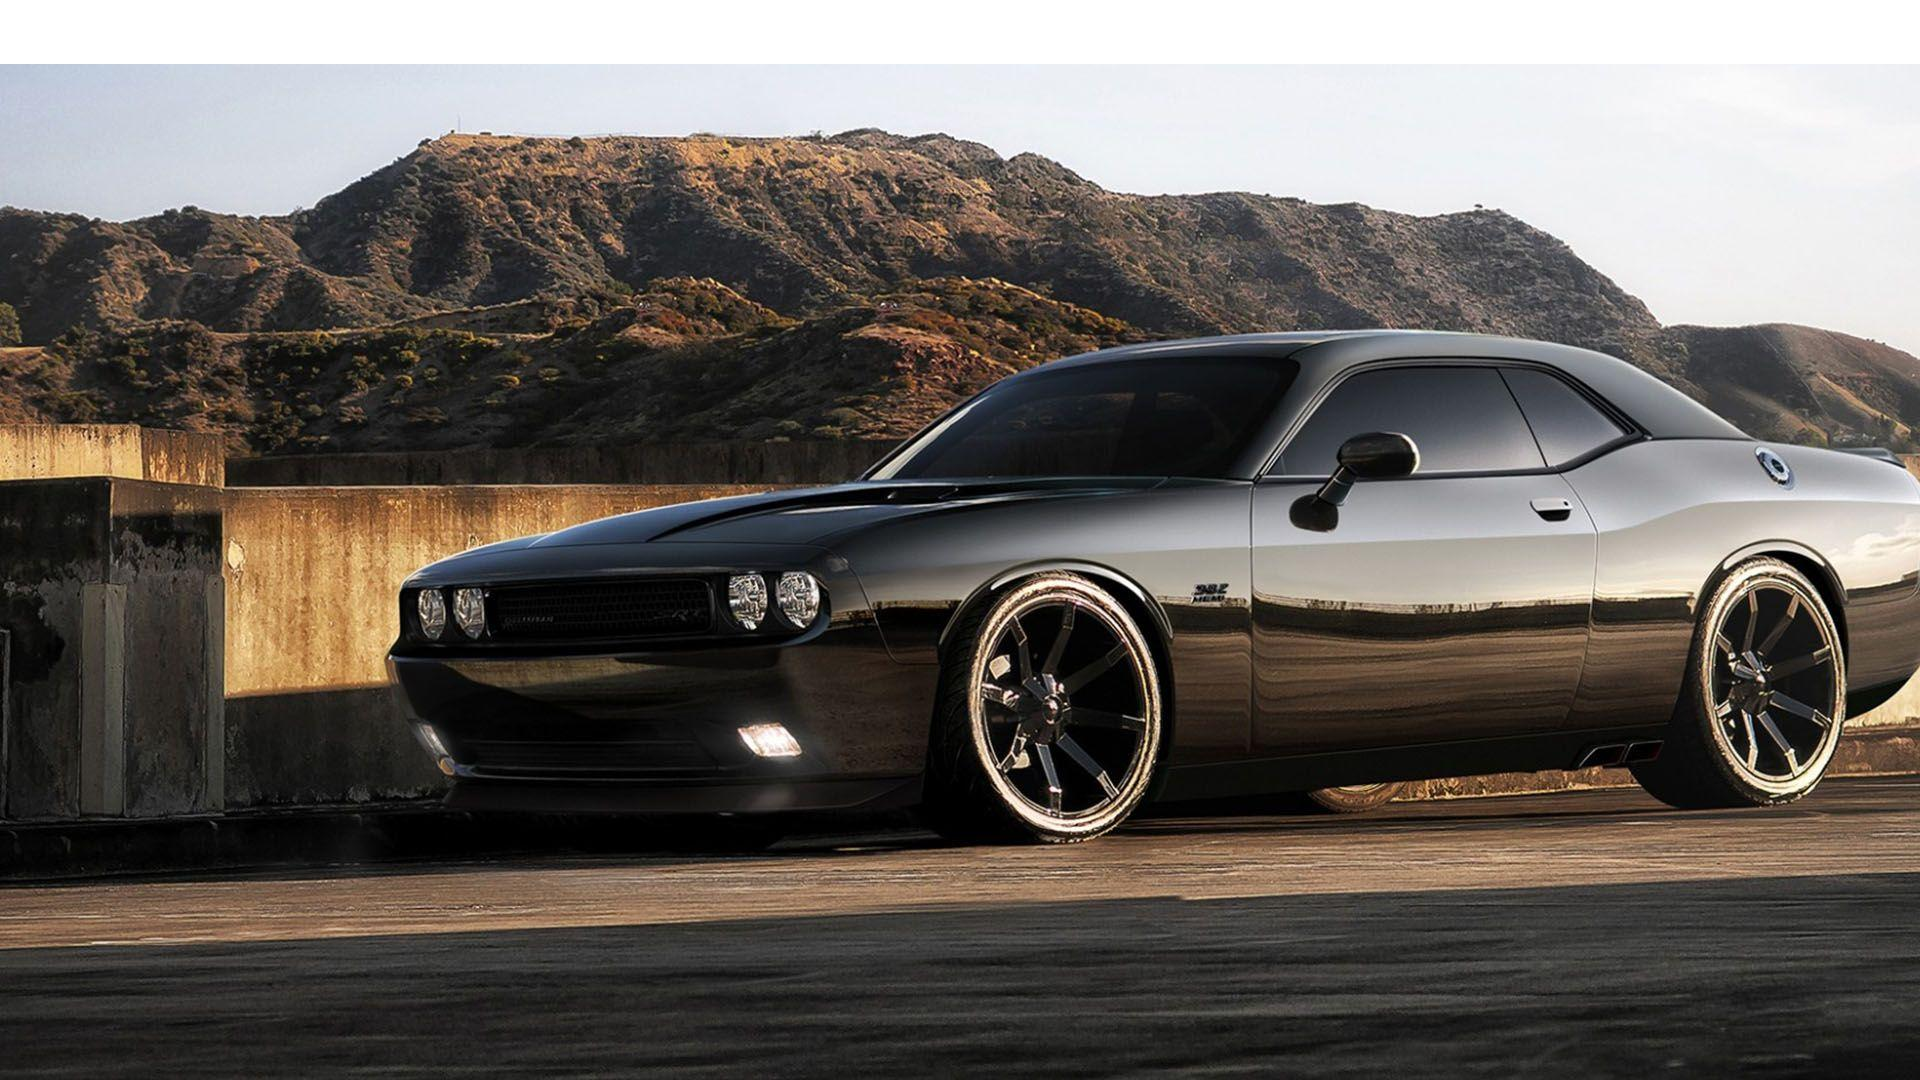 Dodge Charger Srt8 Velgen Wheels Vmb5 Gloss Black 20x9 20x10 5 besides Sequence Movie Part Of Varosha Was Once also 1017685 mopar Now Offering Power Boost For 2015 Dodge Charger R T as well Dodge Challenger Wallpaper as well Challenger Hellcat With Liberty Walk Kit And Pur Wheels Is The Red Hulk 107311. on 2012 challenger srt8 392 for sale